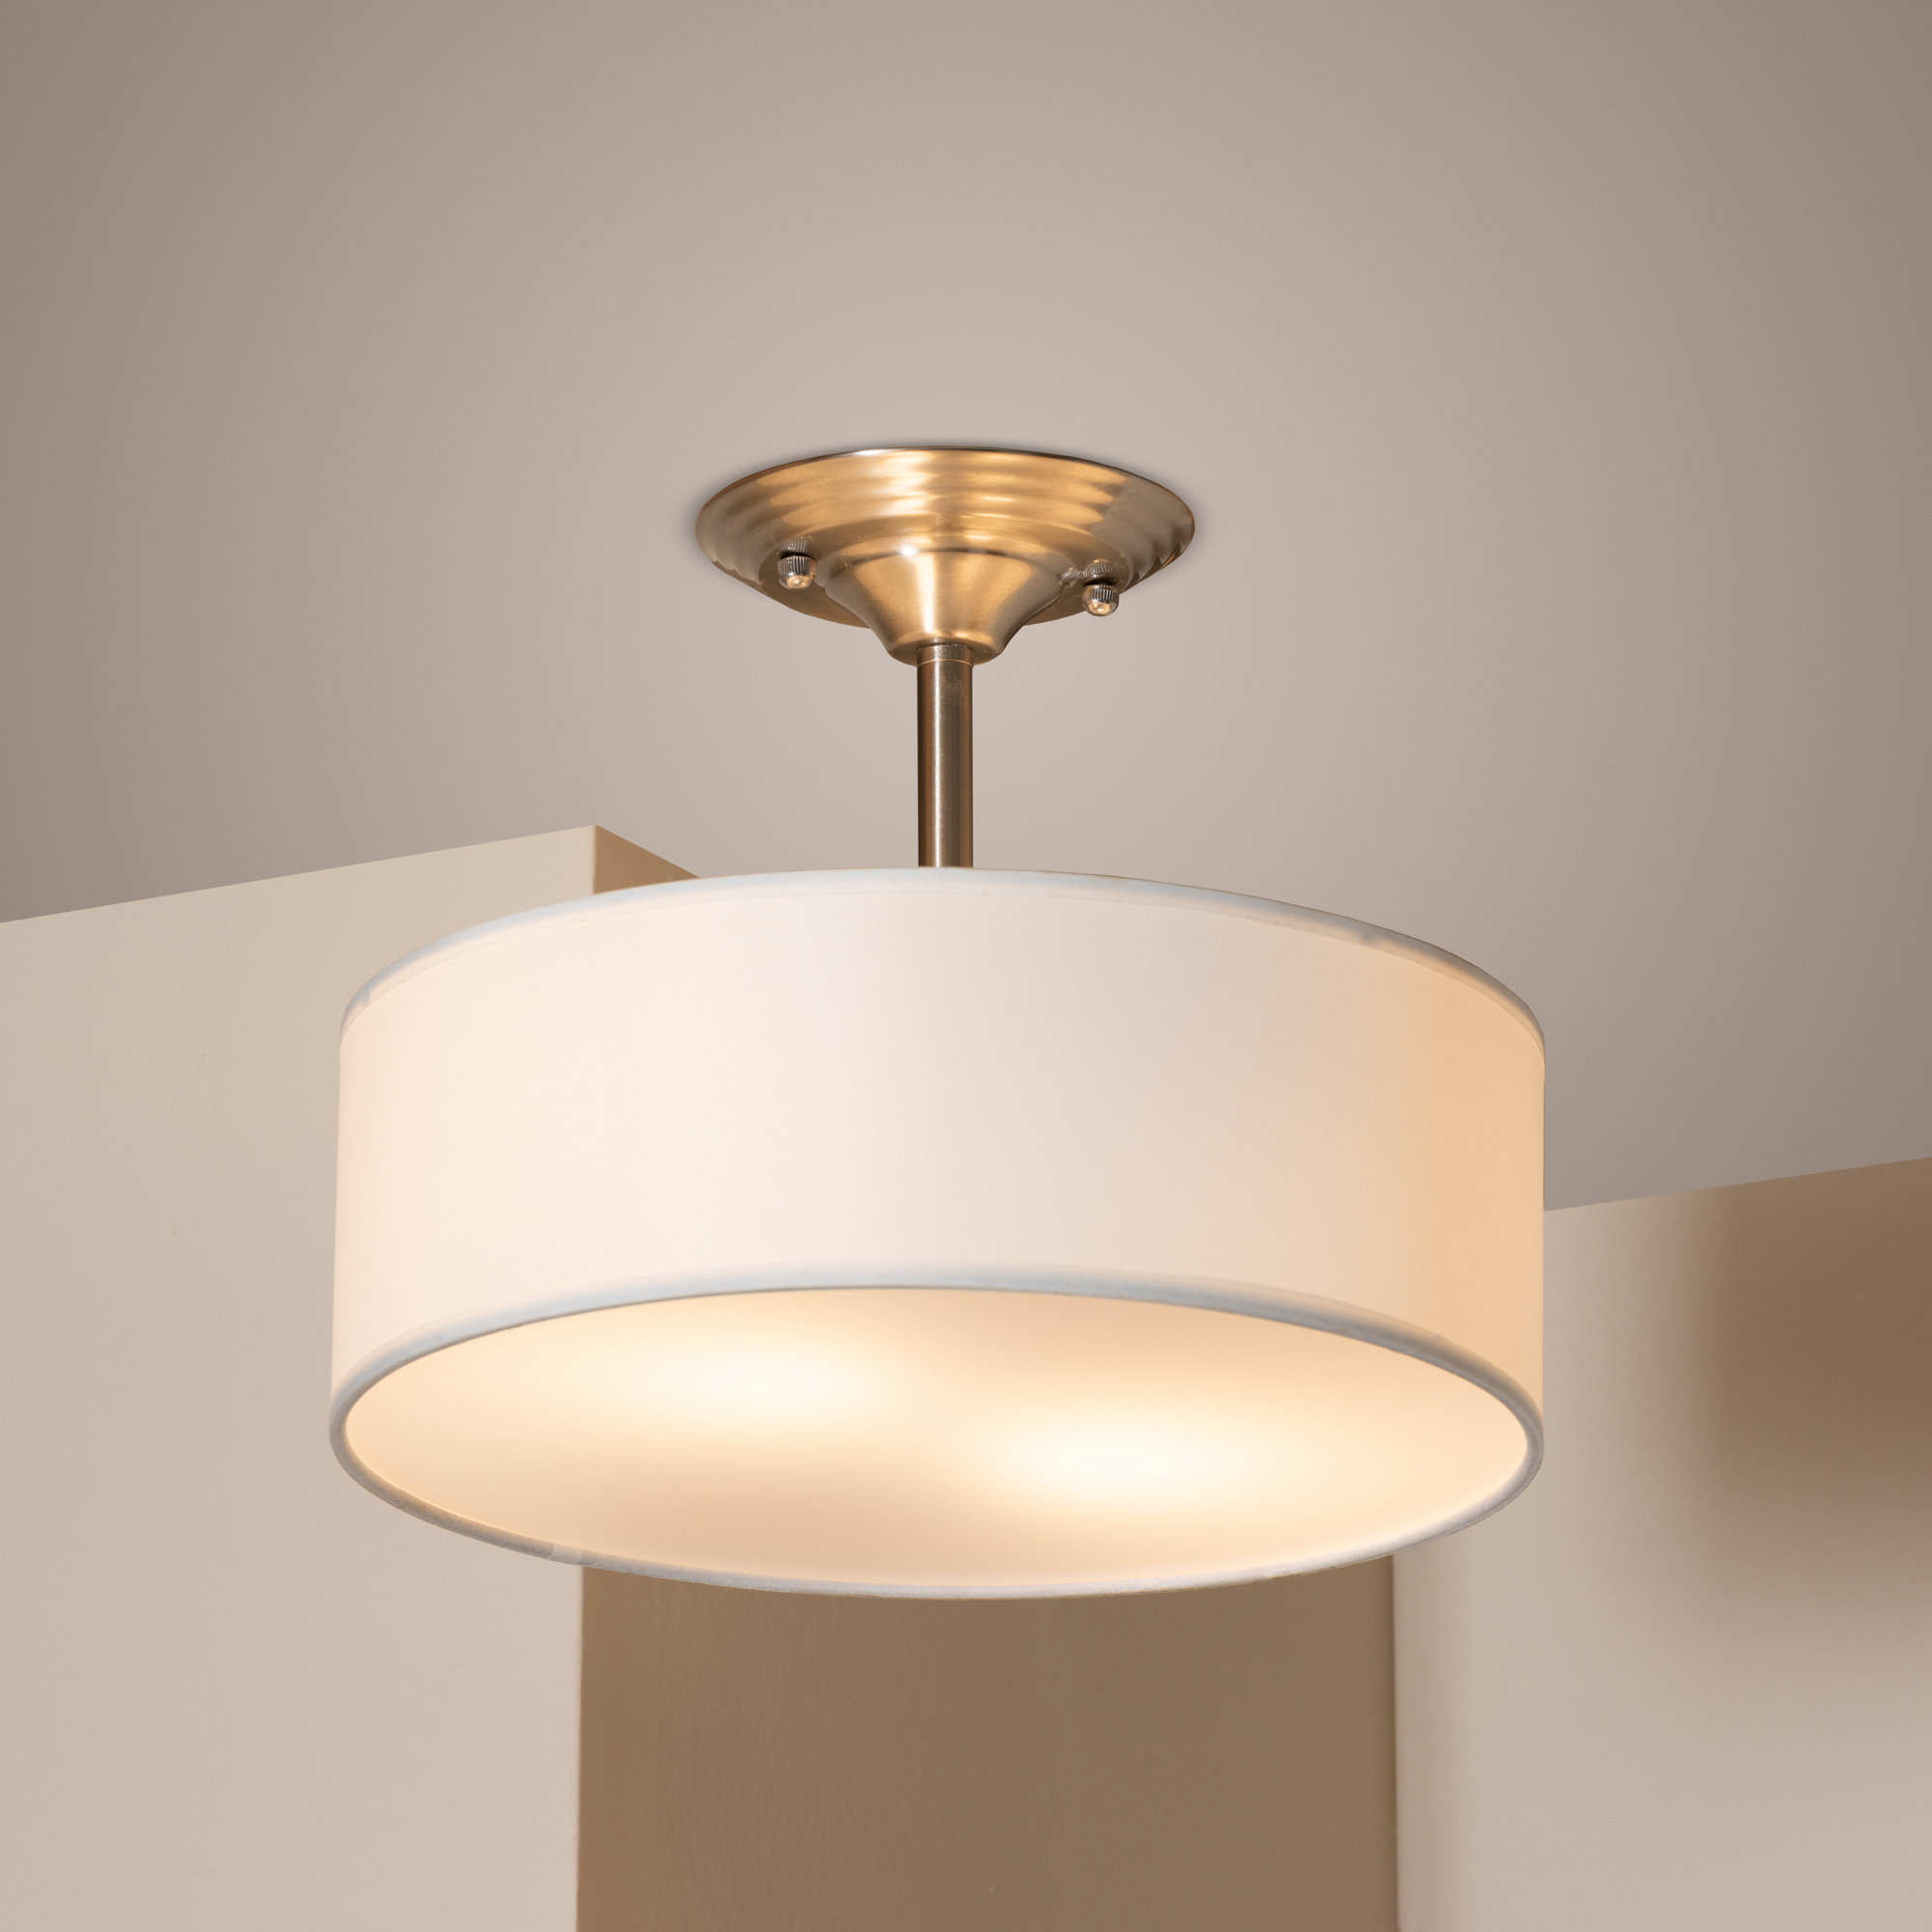 Best And Newest Buchholz 2 Light Drum Pendant With Regard To Friedland 3 Light Drum Tiered Pendants (View 1 of 20)